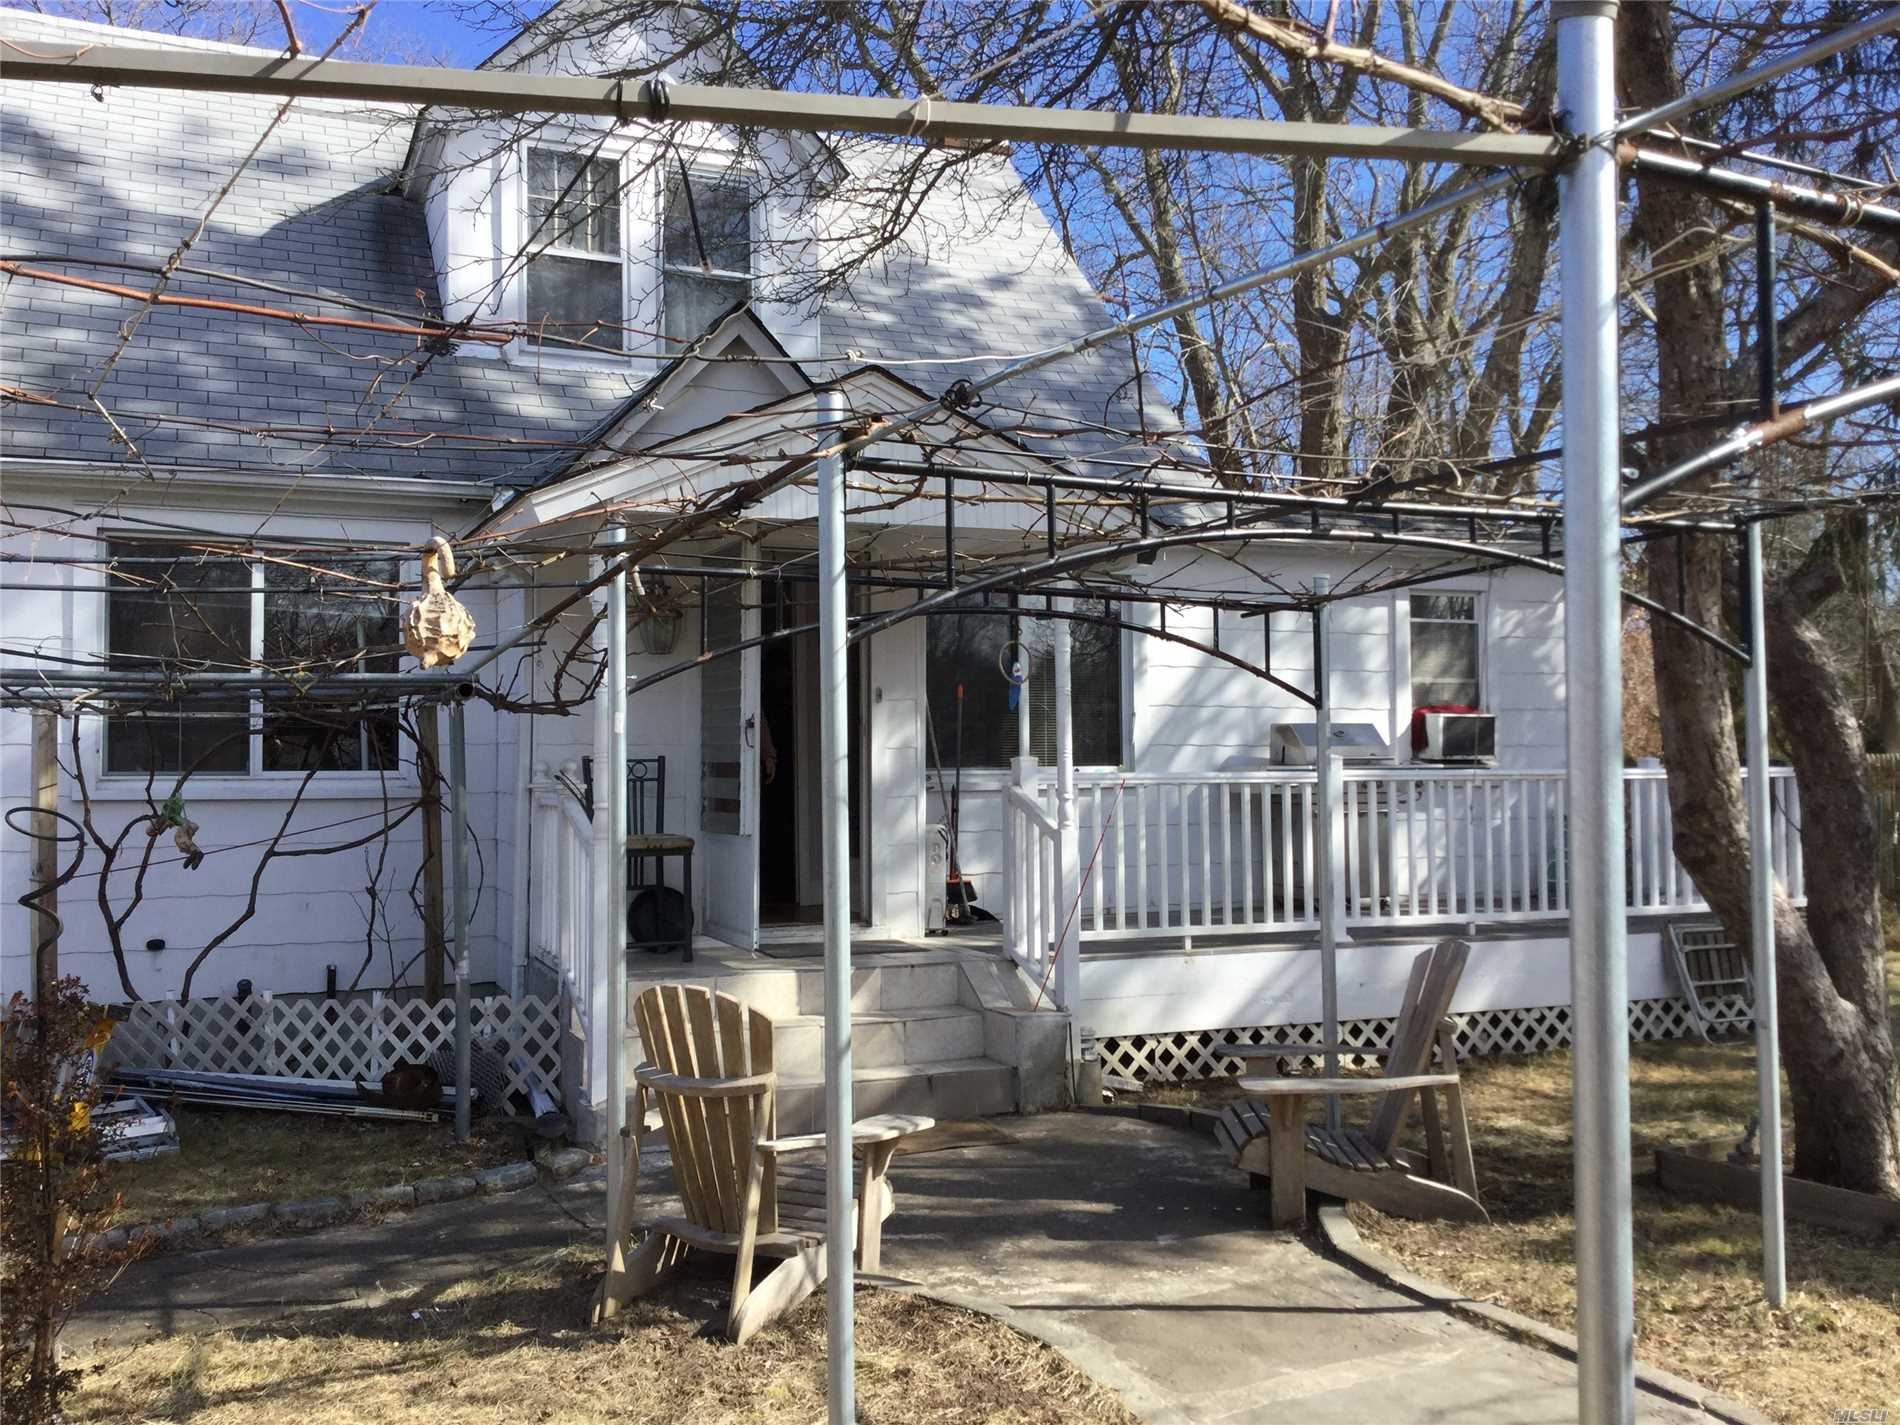 Very Nice, Charming 3 Bedrooms With 2Bath, 2 Car Oversized Garage. The Extension To The Garage Is A Gift, Which Can Be A Possible Mother-Daughter, With Proper Permits. Rare Half An Acre Of Property.